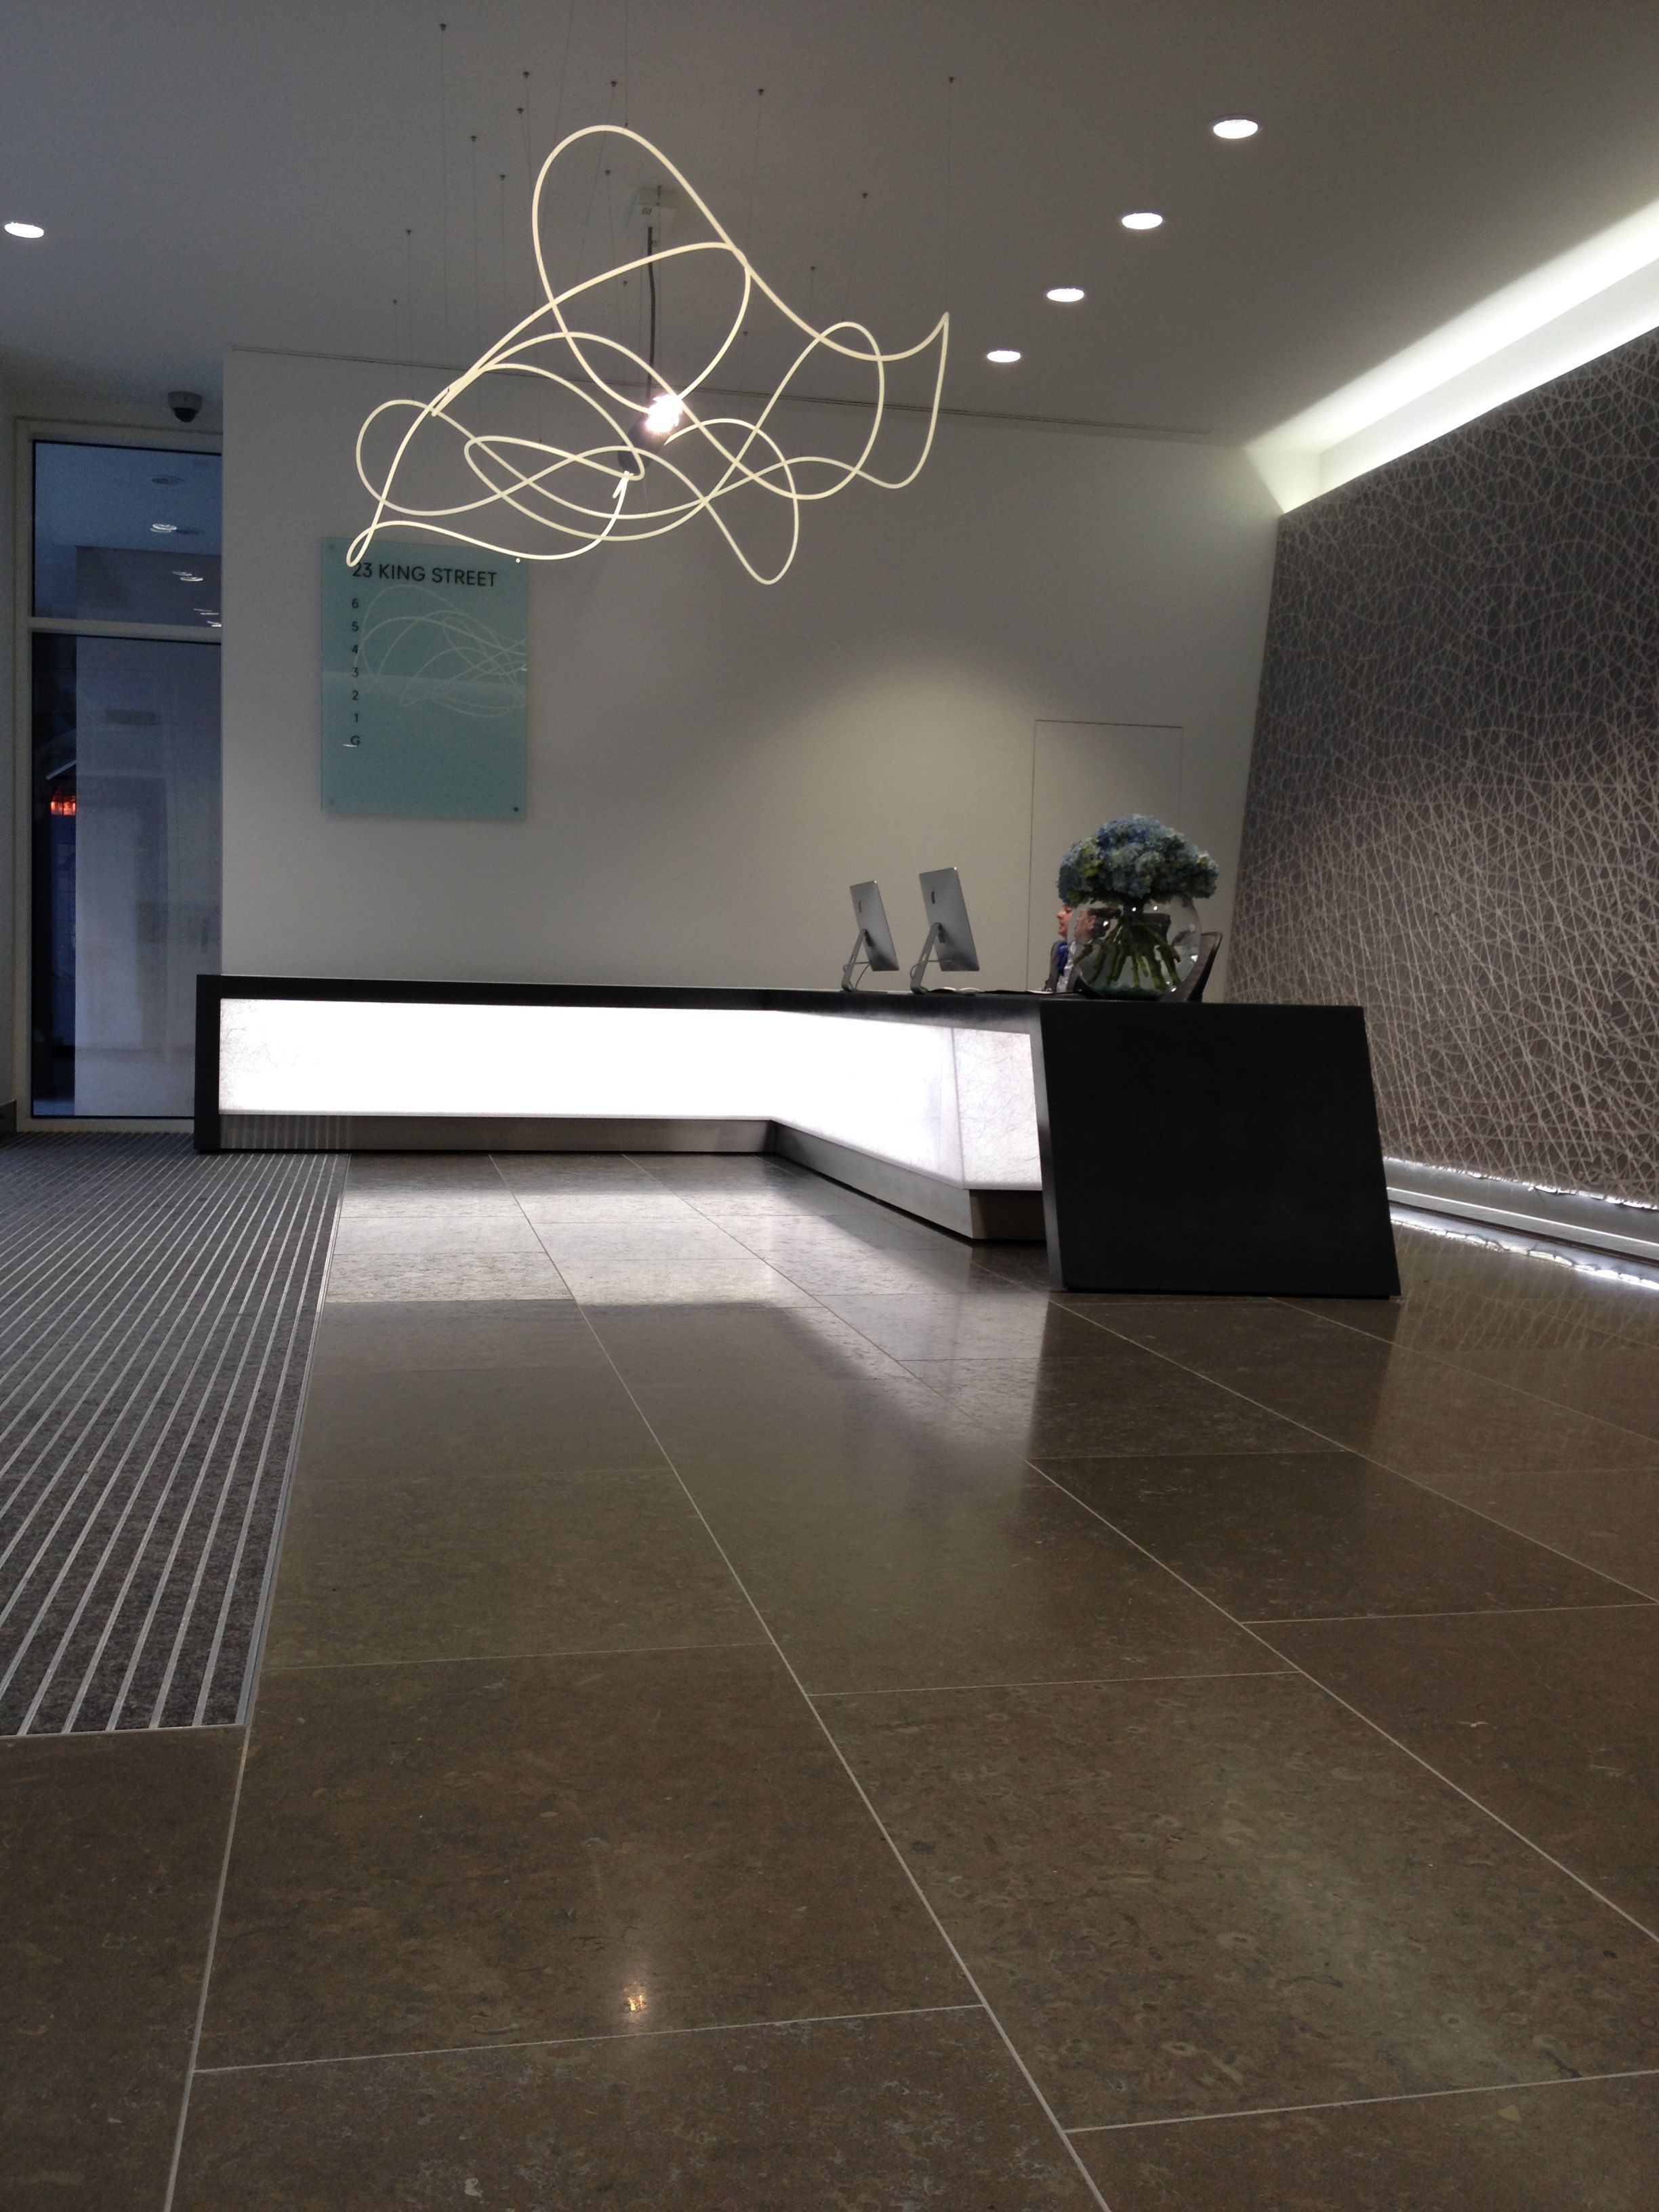 Bespoke Concrete Reception Desk Cladding By MASS Joinery Eximiousfurniturecouk